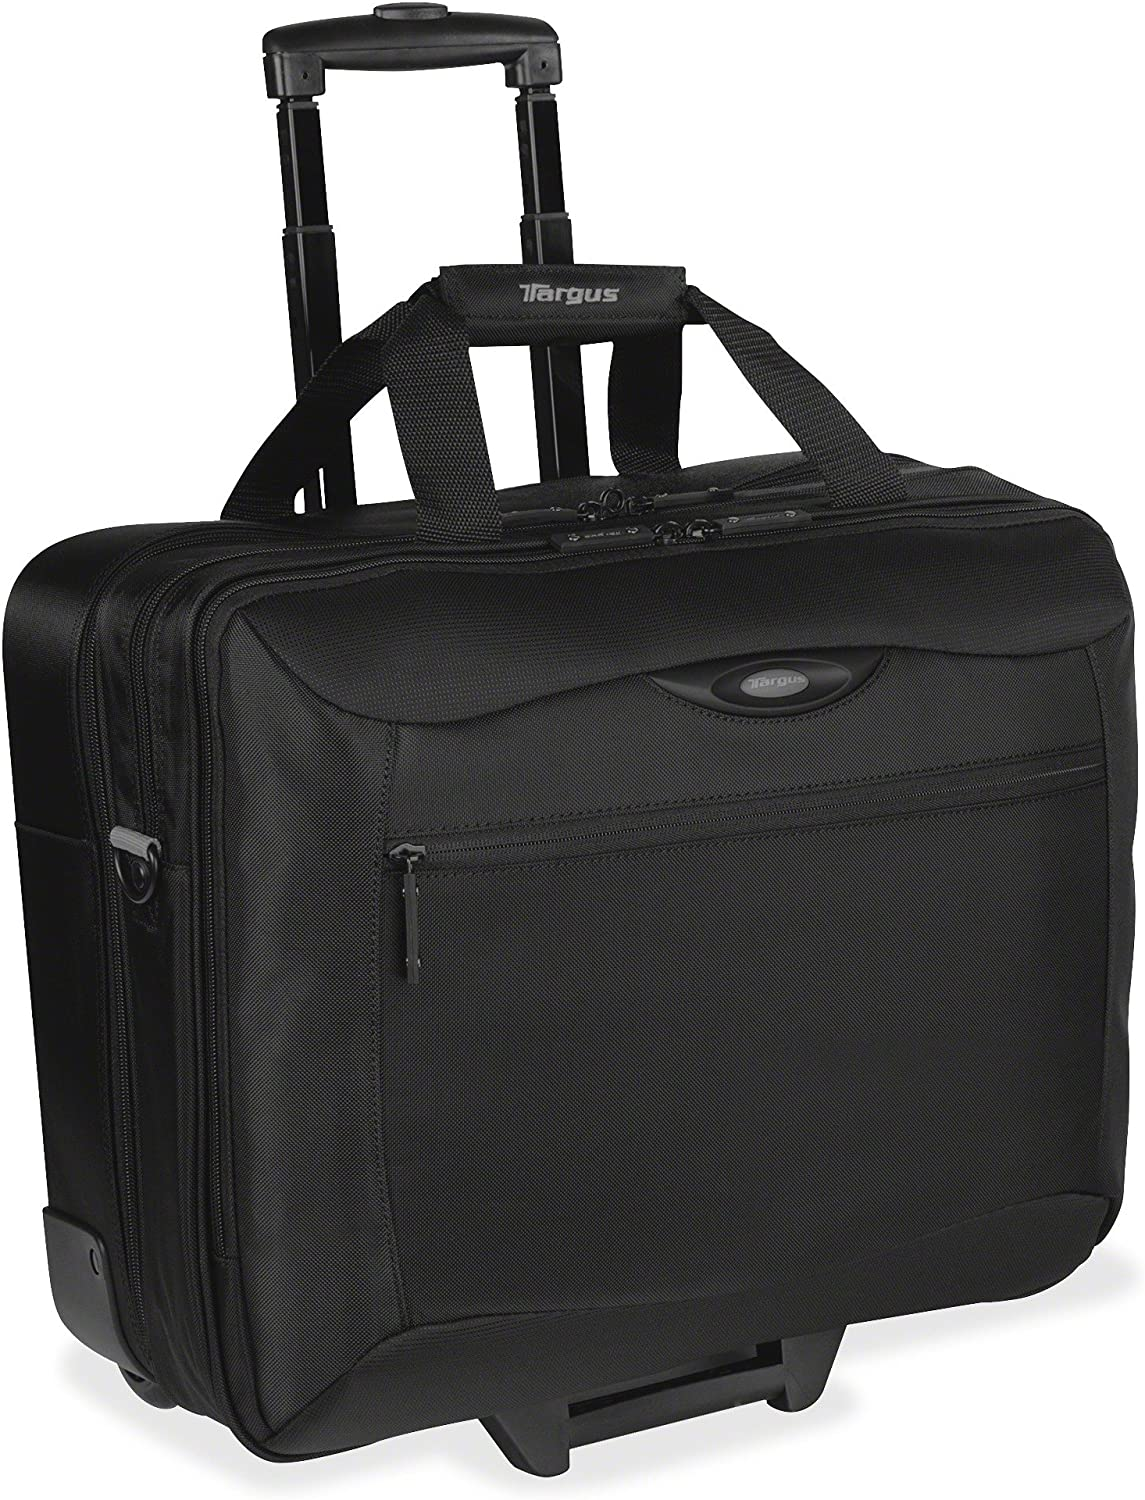 Targus TCG717 CityGear Rolling Travel Laptop Case, Nylon, 18 x 10 x 15, Black/Silver